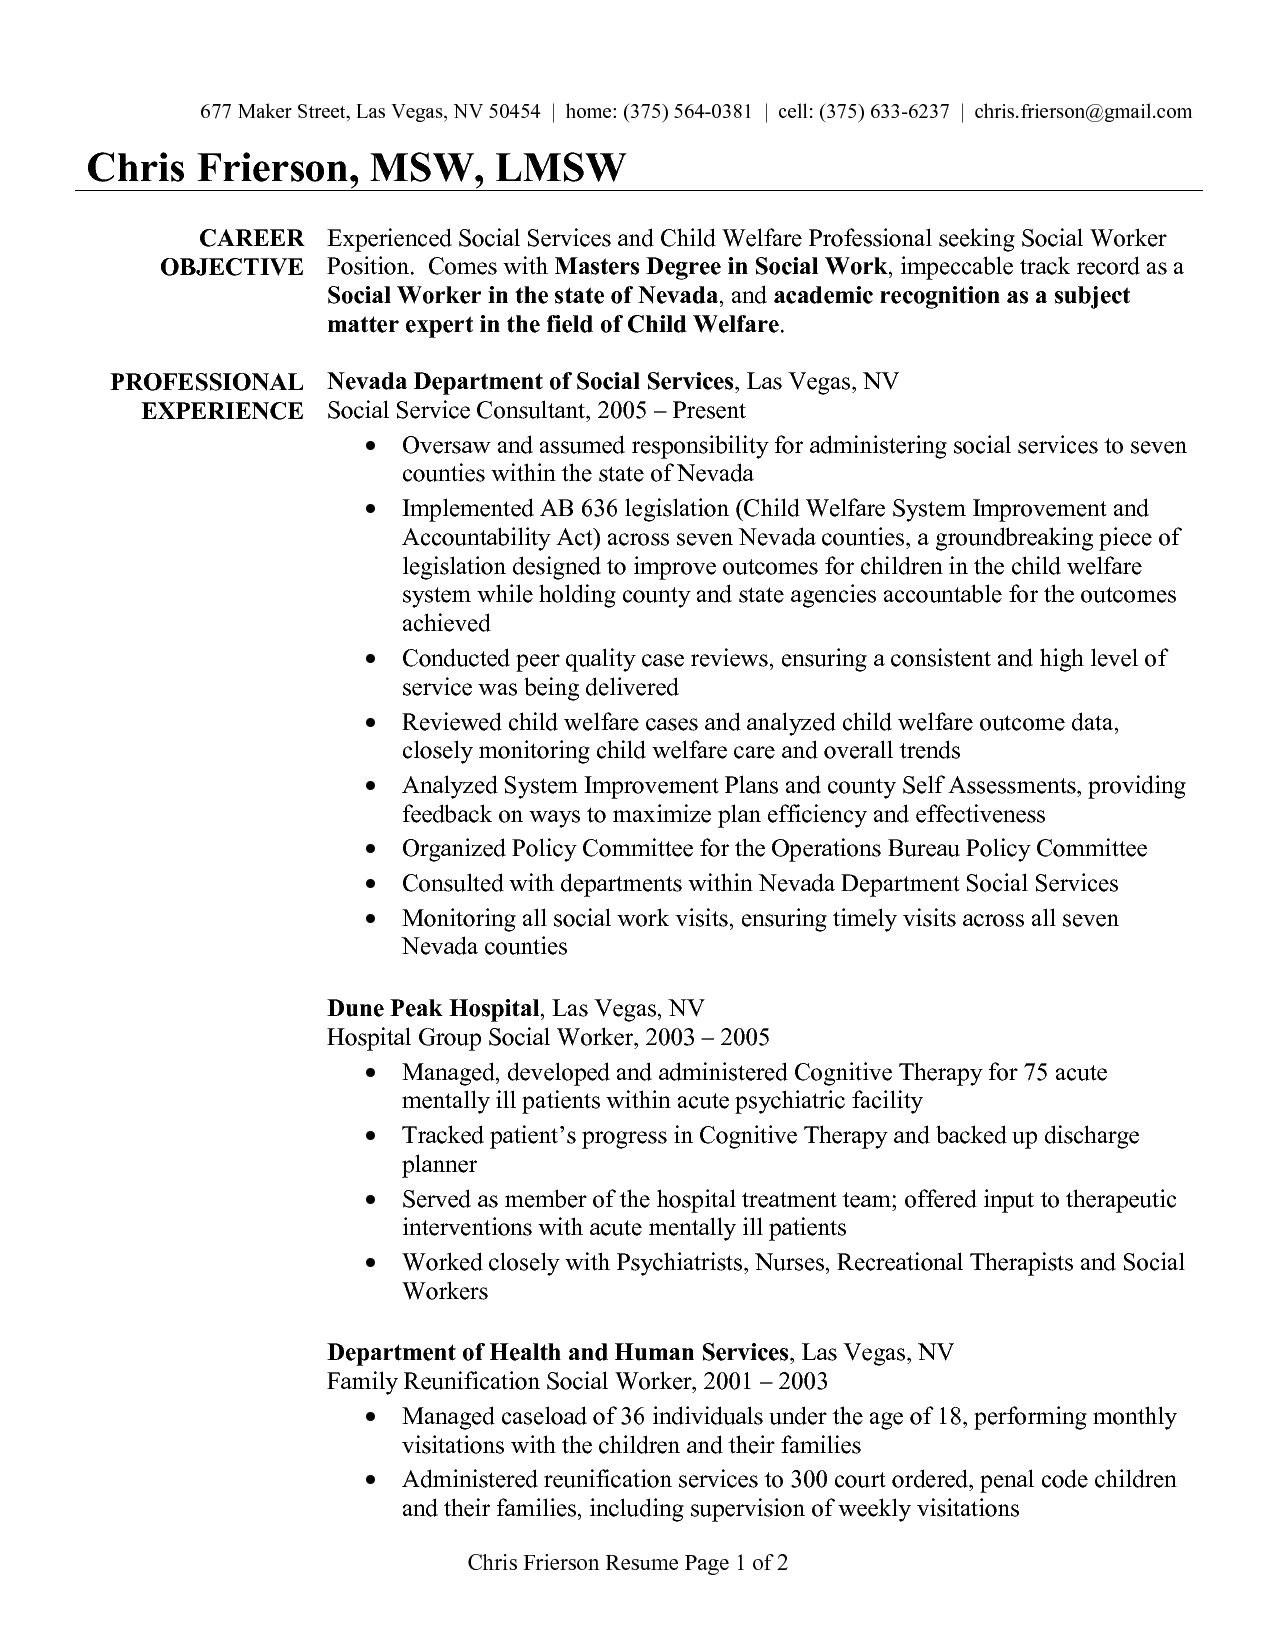 social work resume examples | Social Worker Resume Sample ...